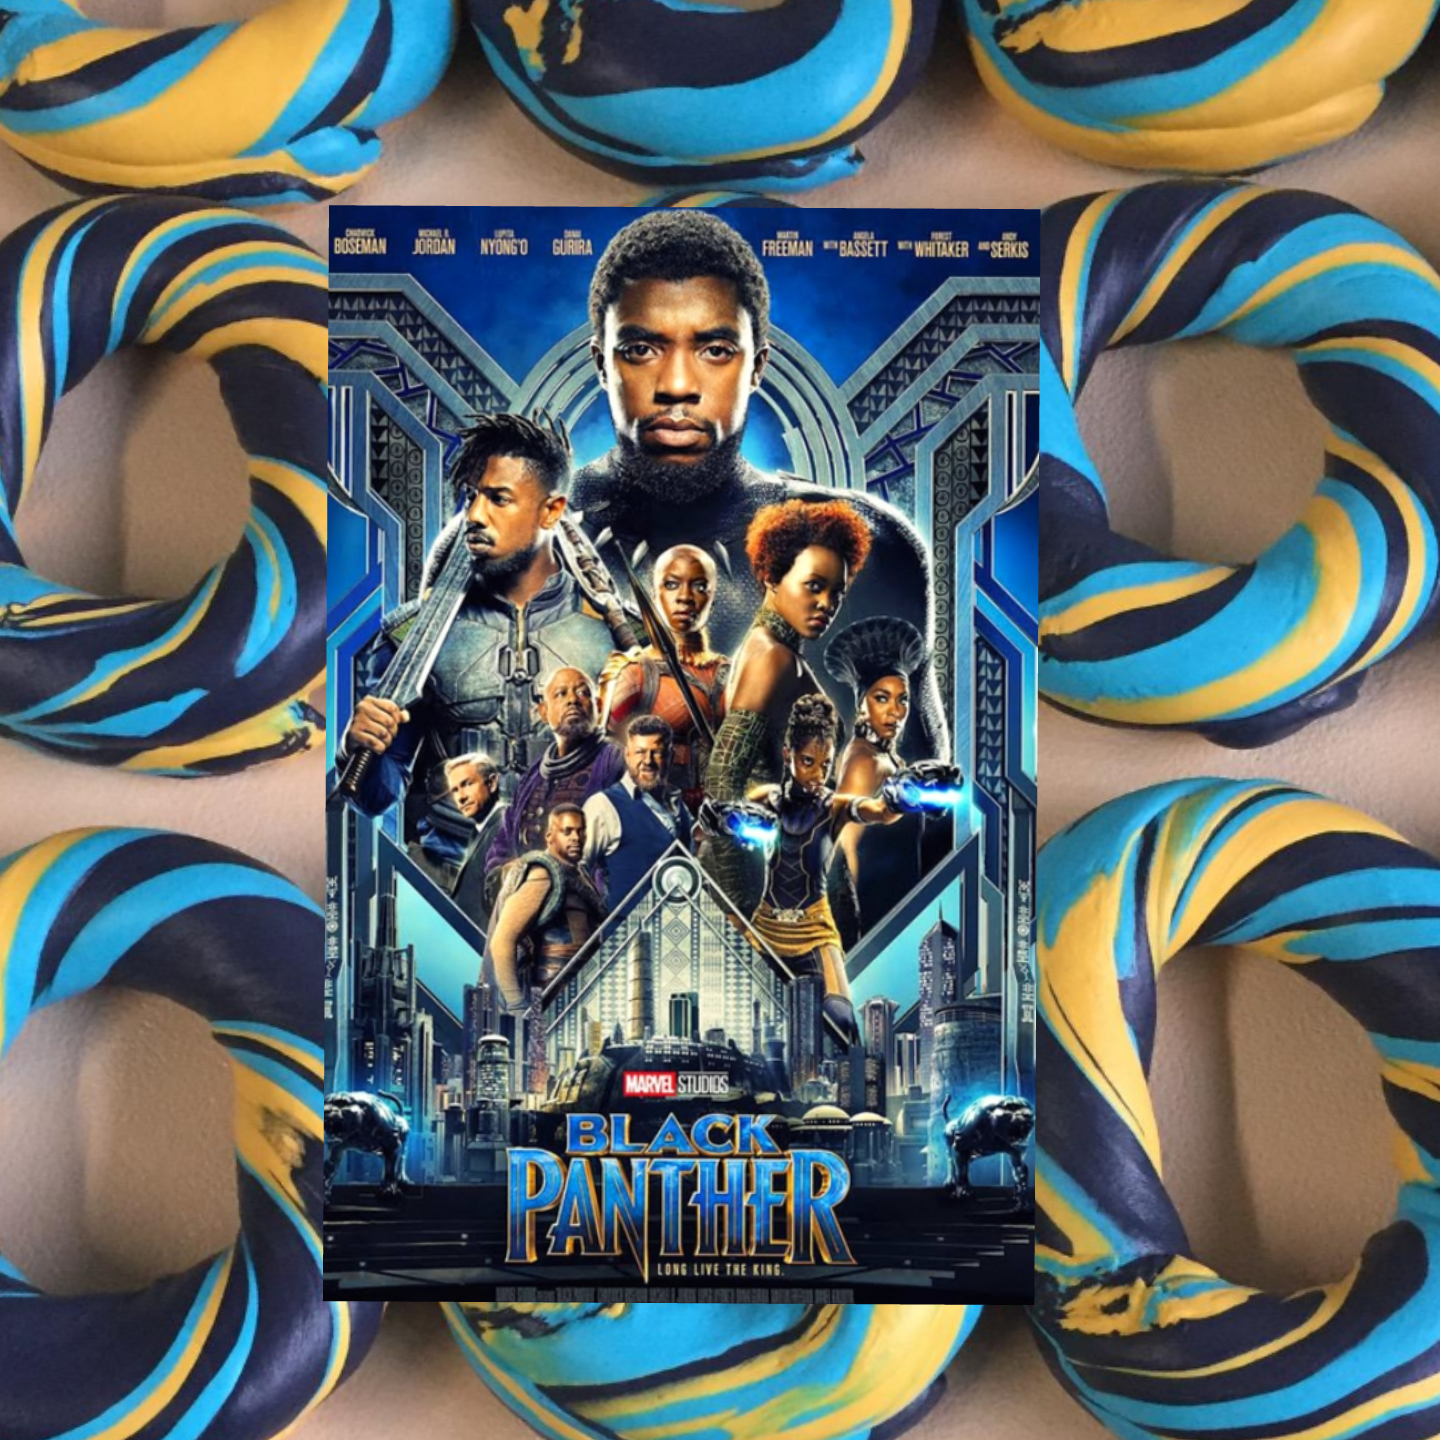 black panther movie custom bagel design